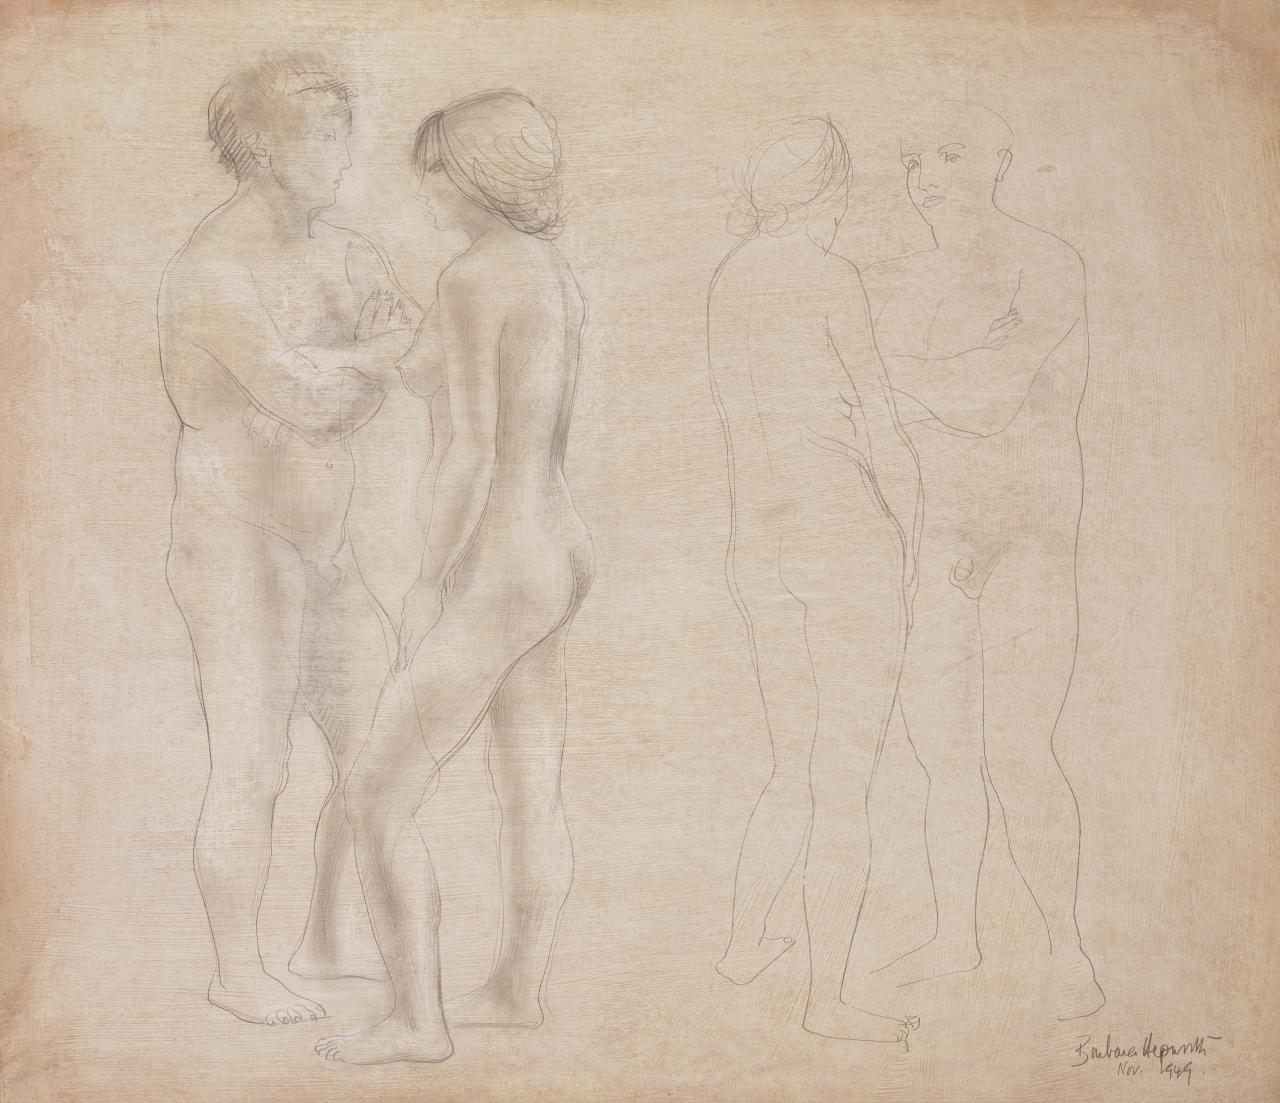 Two groups of two figures